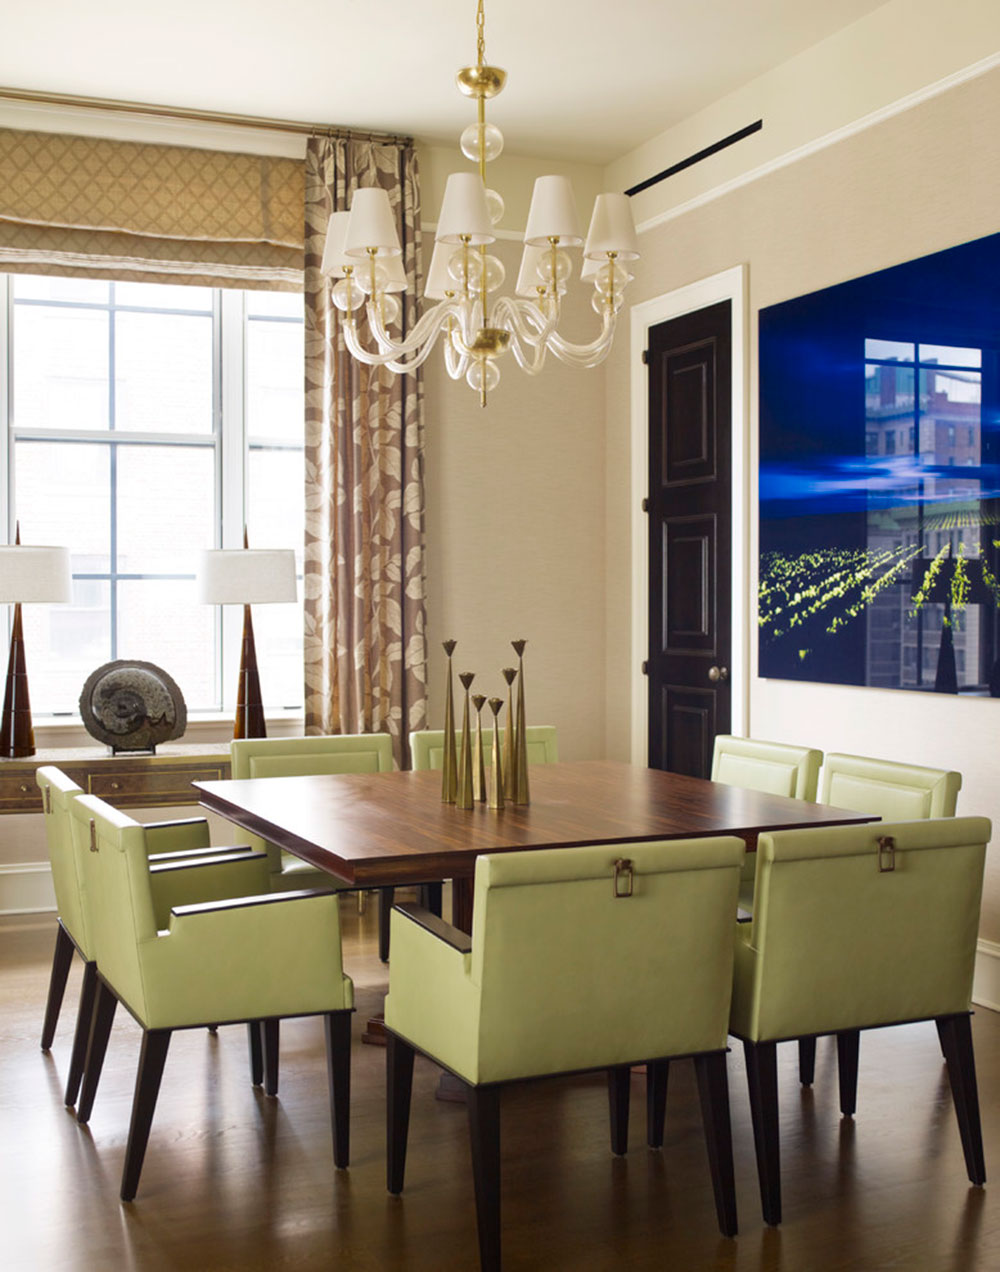 Dining Room Table Design Ideas For Entire Family9